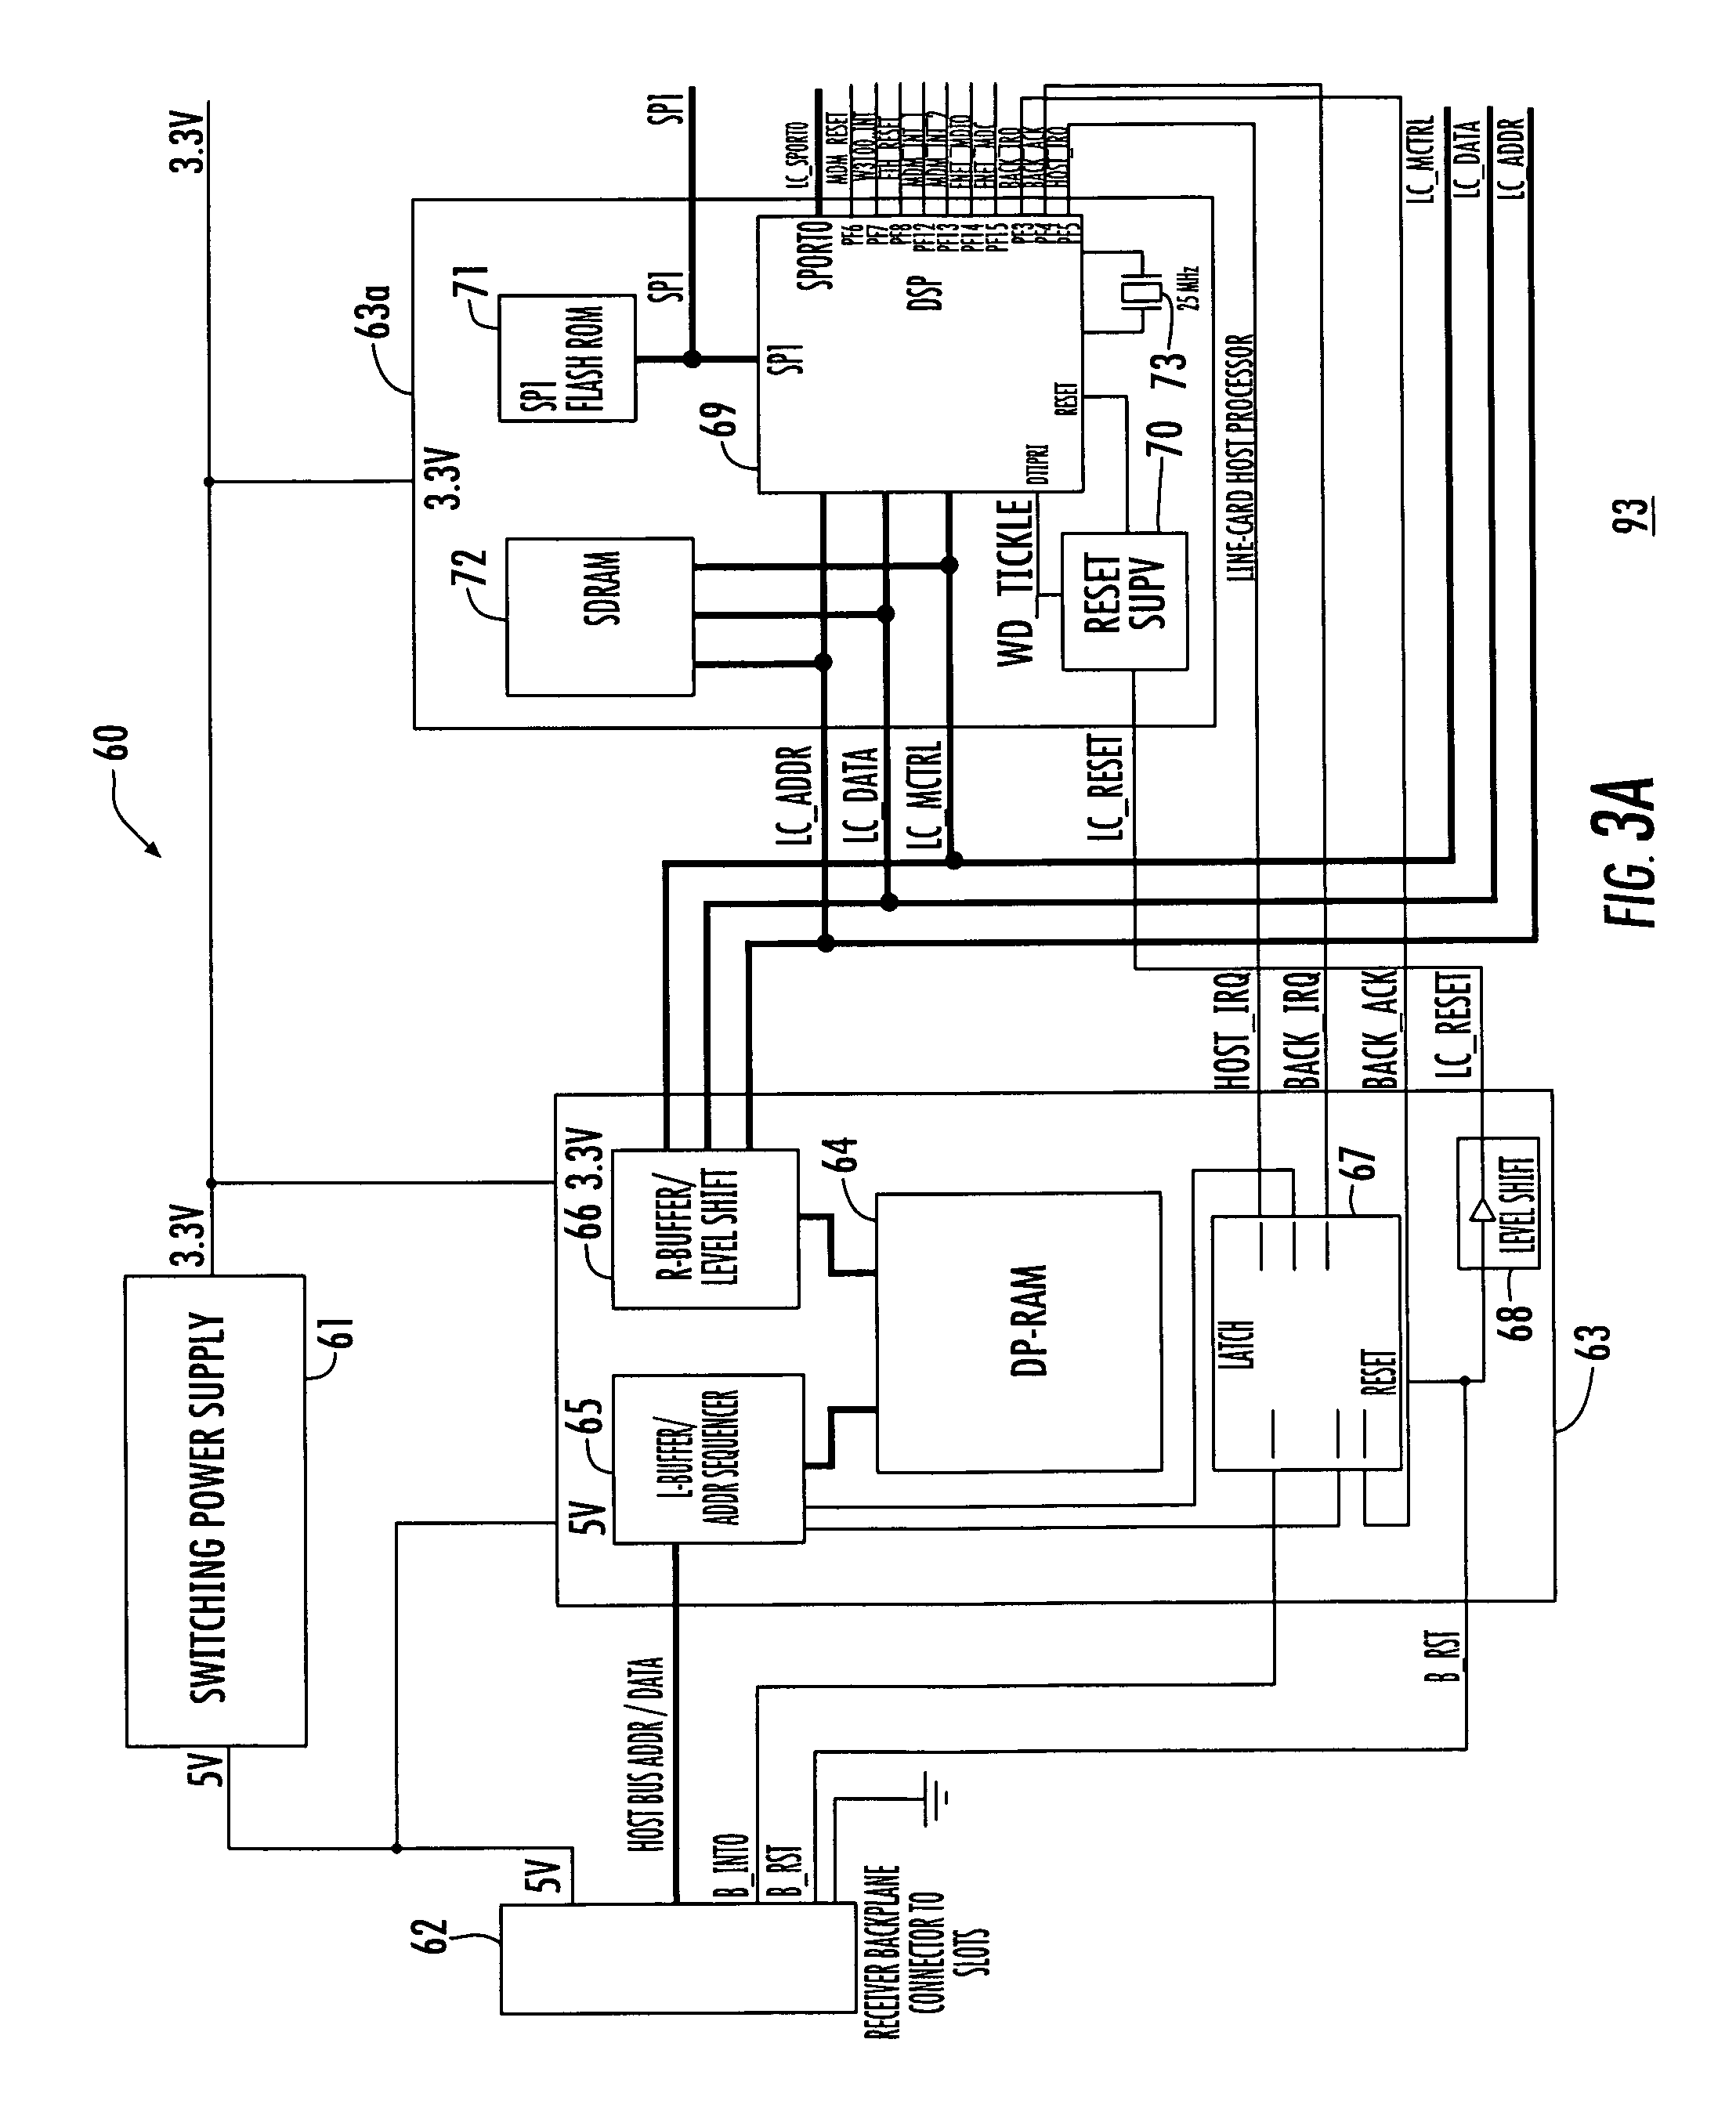 manual call point wiring diagram patent us8531286 system and method for monitoring power point wiring diagram australia